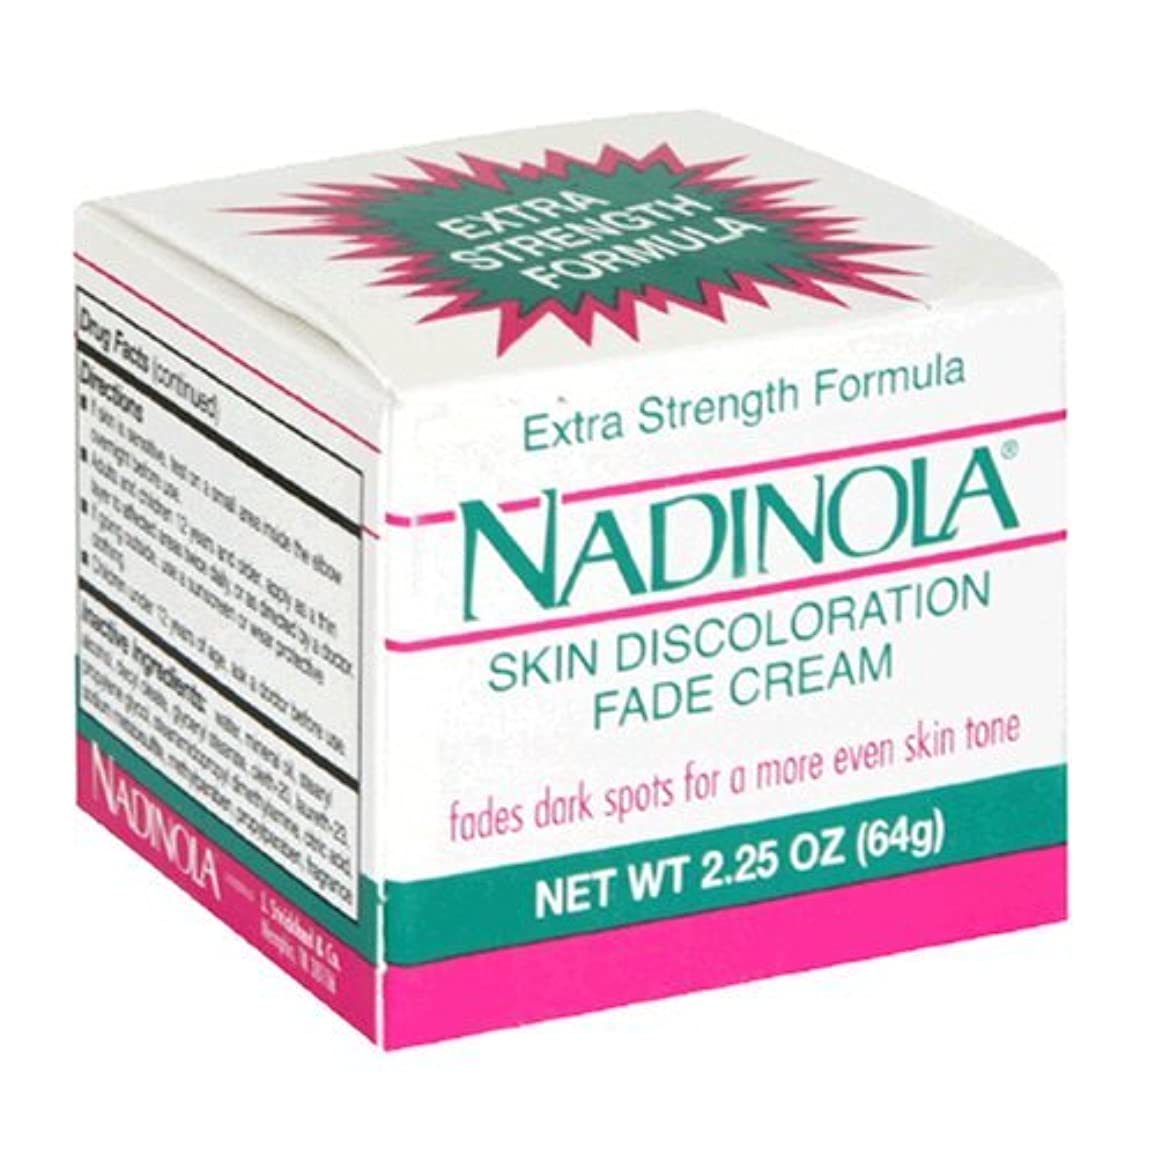 どれマイルドマカダムNadinola Discoloration Fade Cream 2.25oz Extra Strength (並行輸入品)